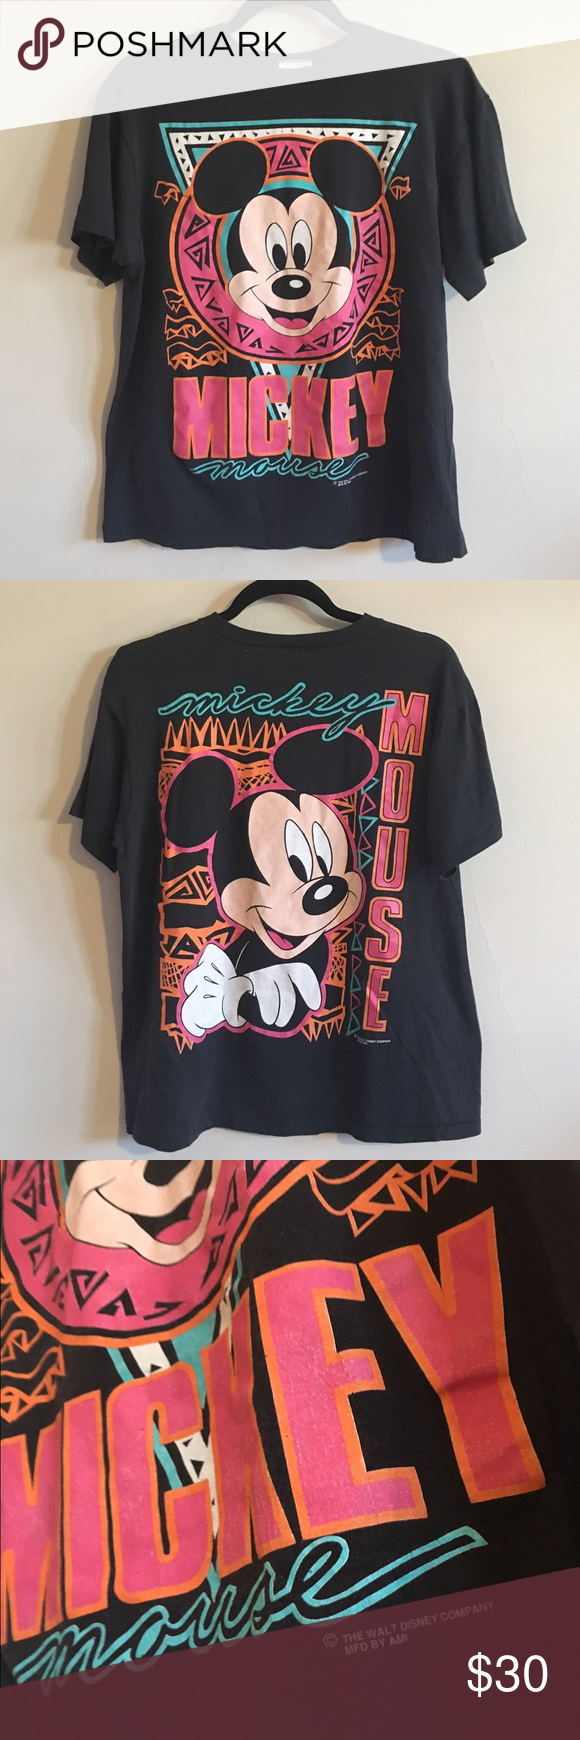 a79d8439 Vintage 90s Mickey Mouse Disney World T-shirt Vintage 90s hip hop Mickey  Mouse shirt Vintage Tops Tees - Short Sleeve